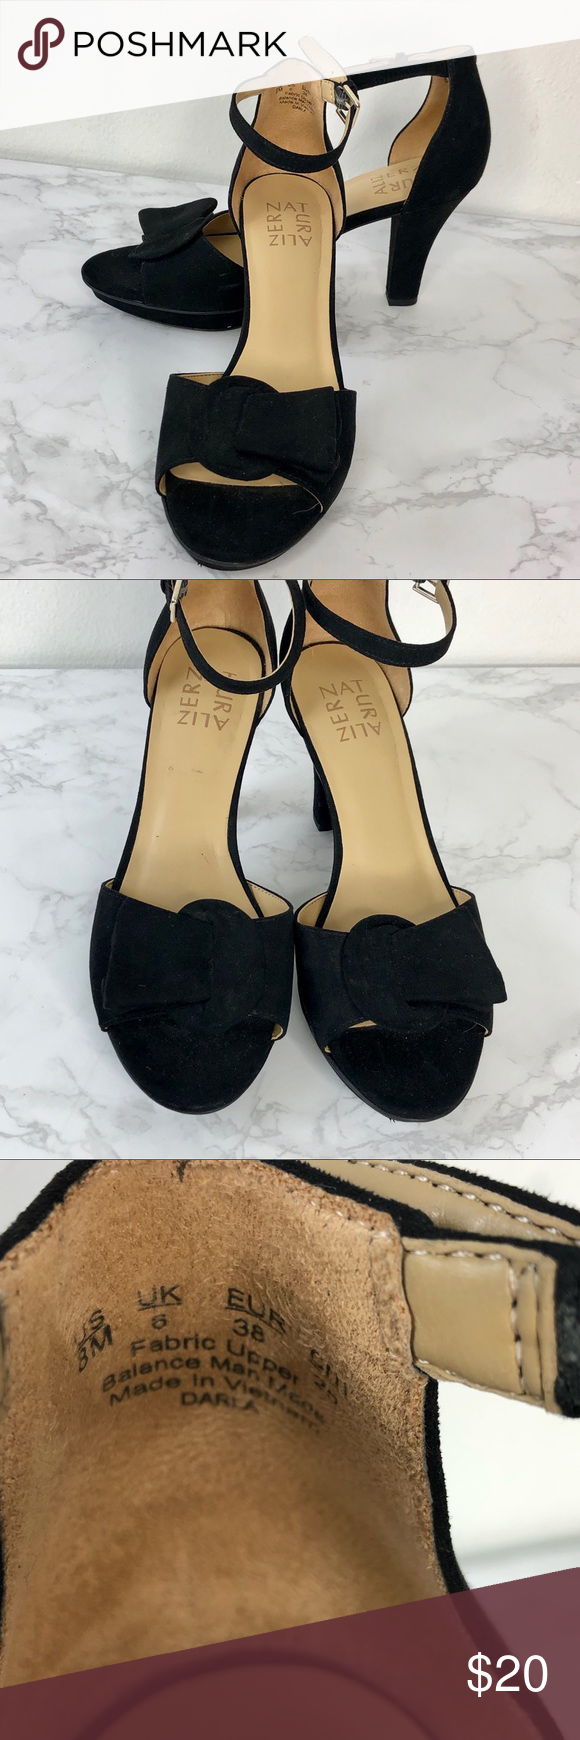 130ac6456b Naturalizer Black Suede Platform Sandal Darla Gently used - see pics. Size  8 Add a